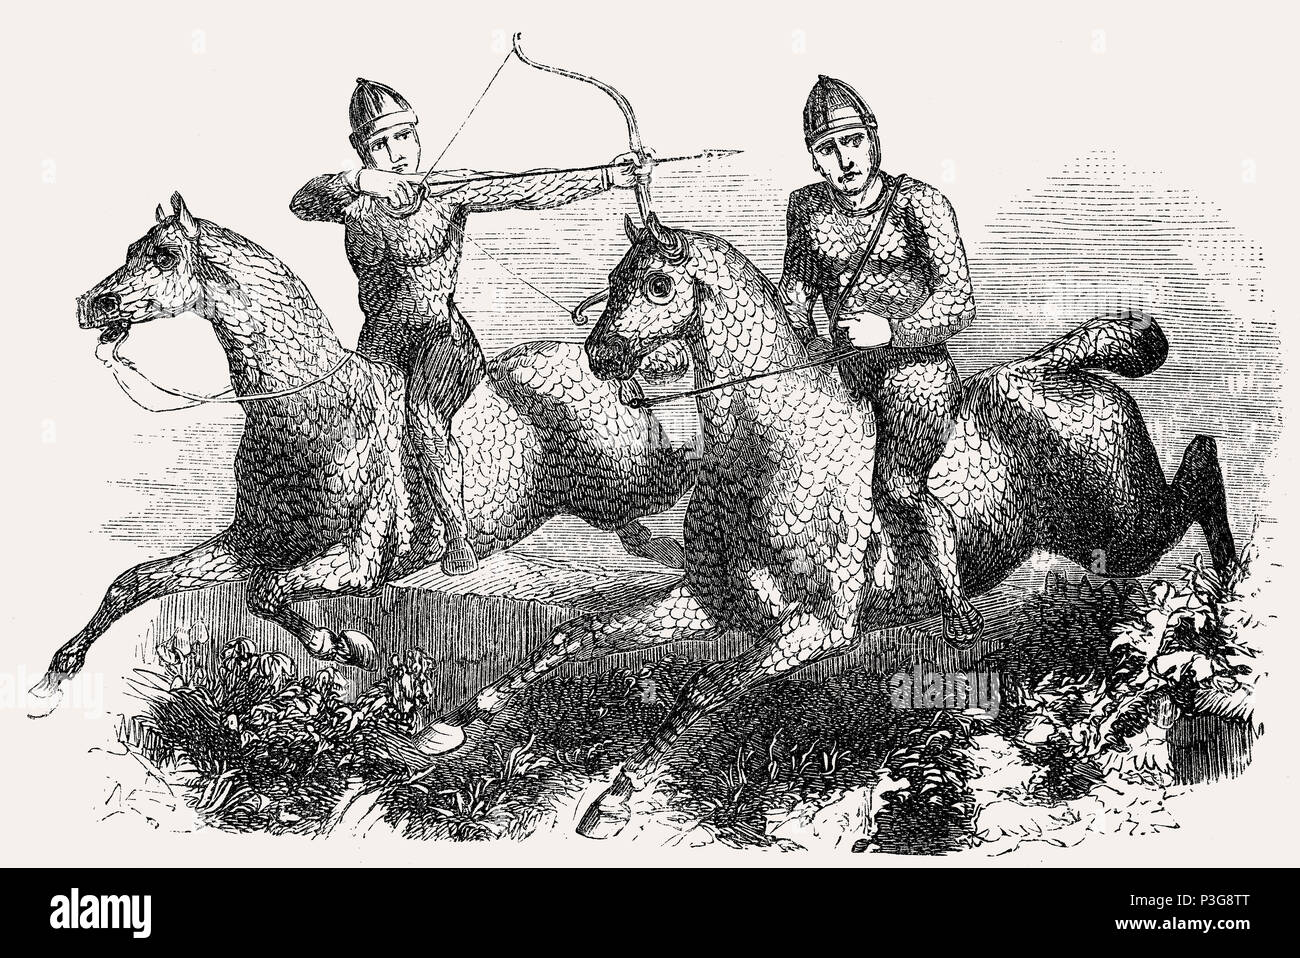 Sarmatian cavalry during Dacian Wars, lizard-like scale armour made of stitched together hoof plates - Stock Image